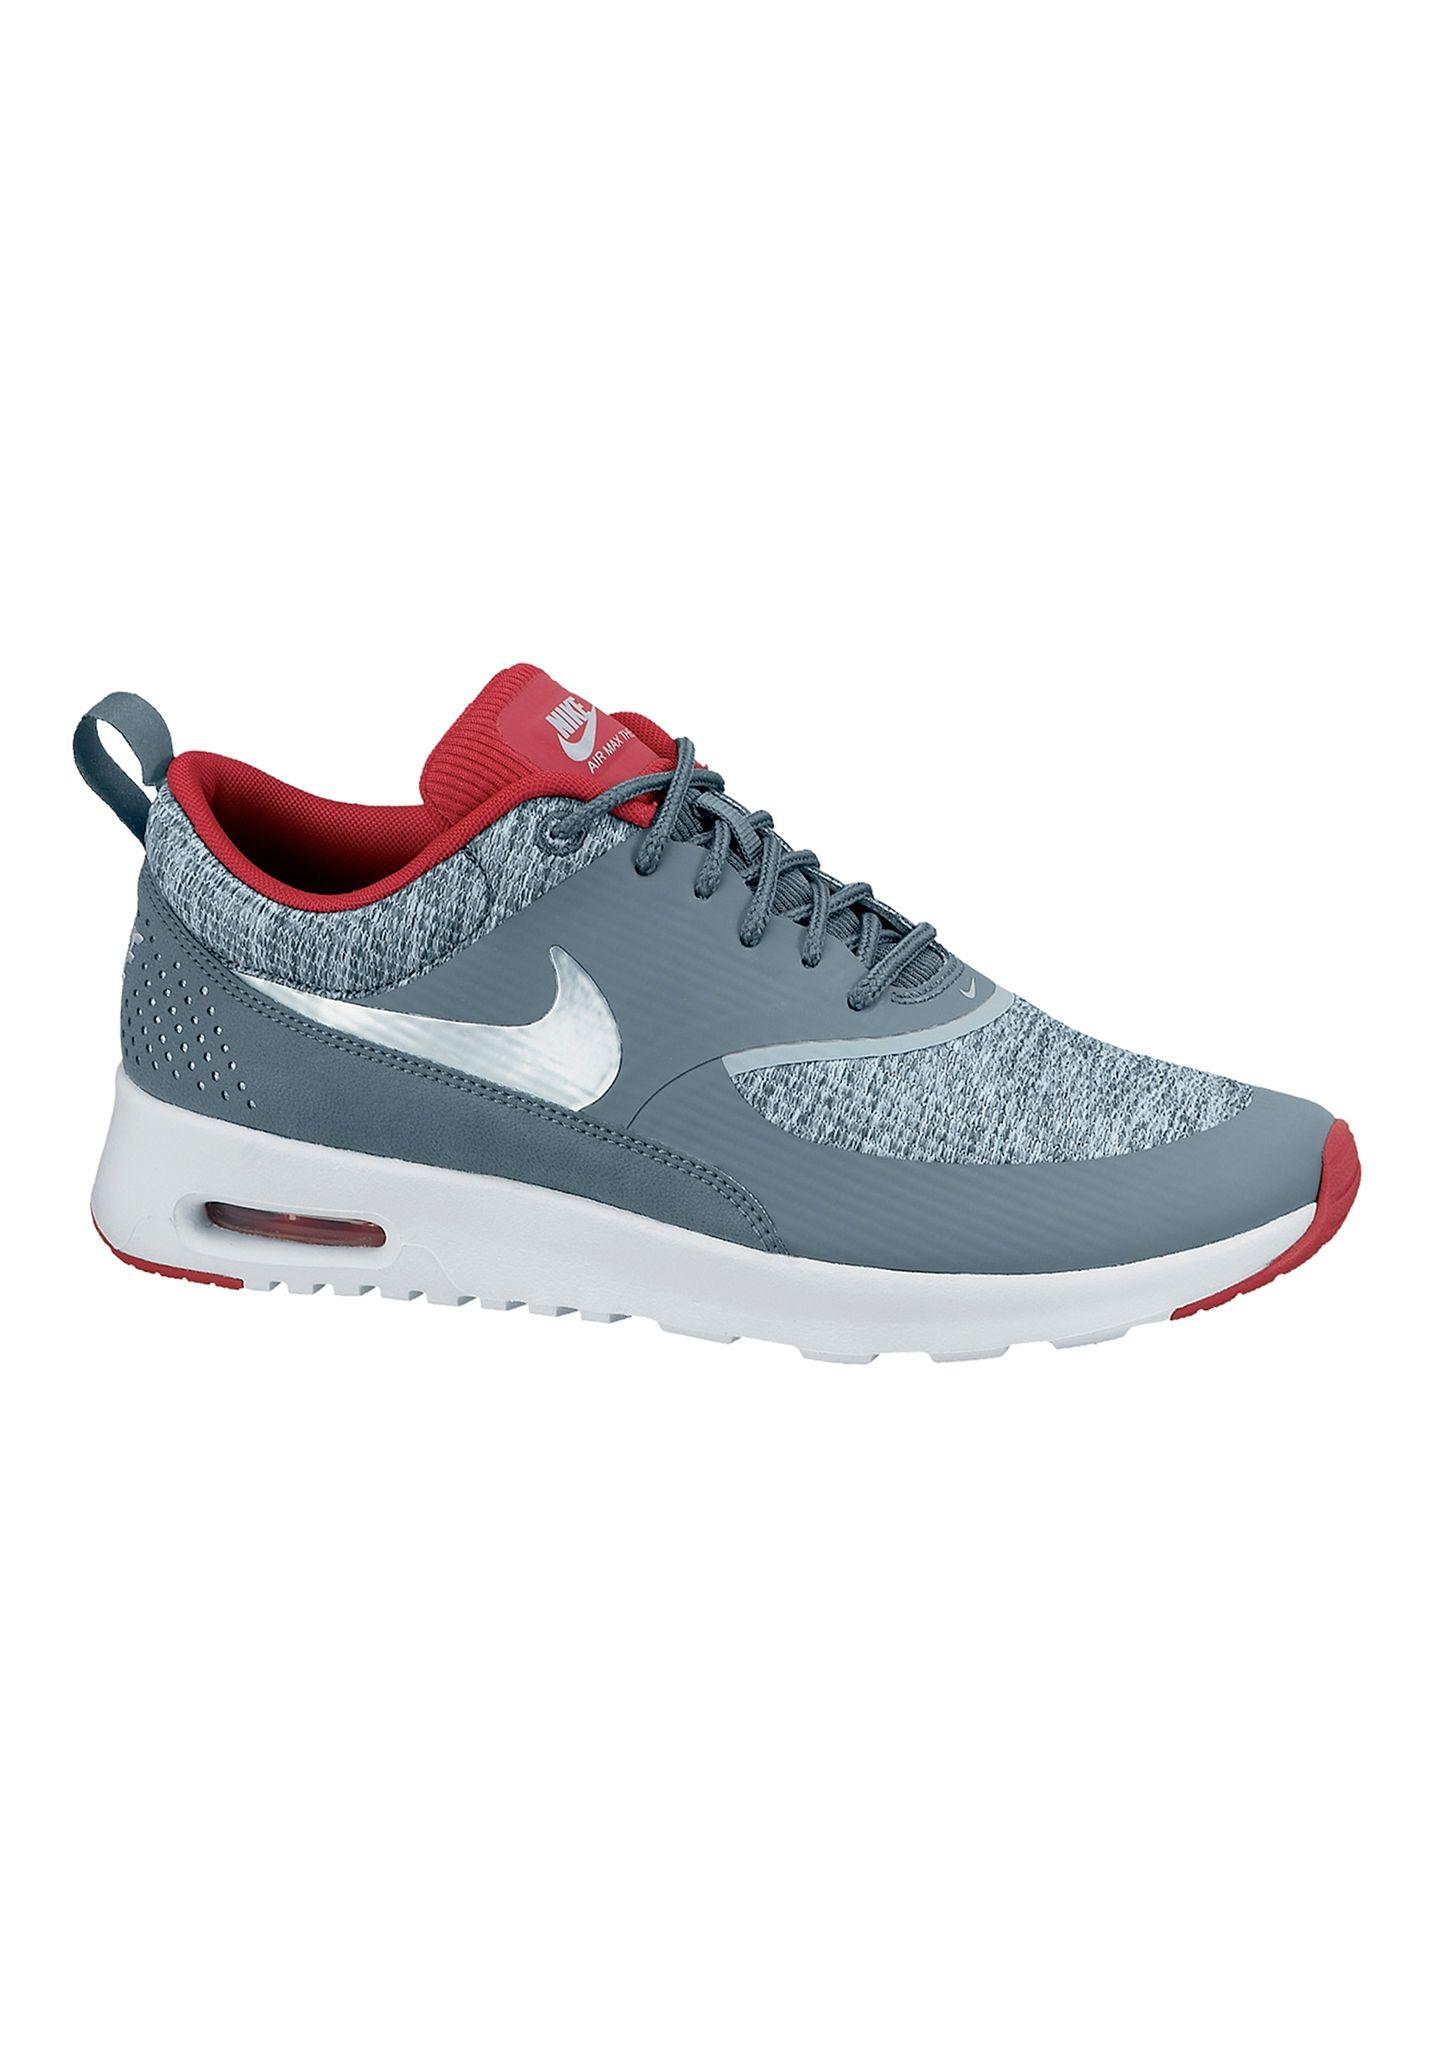 nike air max thea premium grau. Black Bedroom Furniture Sets. Home Design Ideas